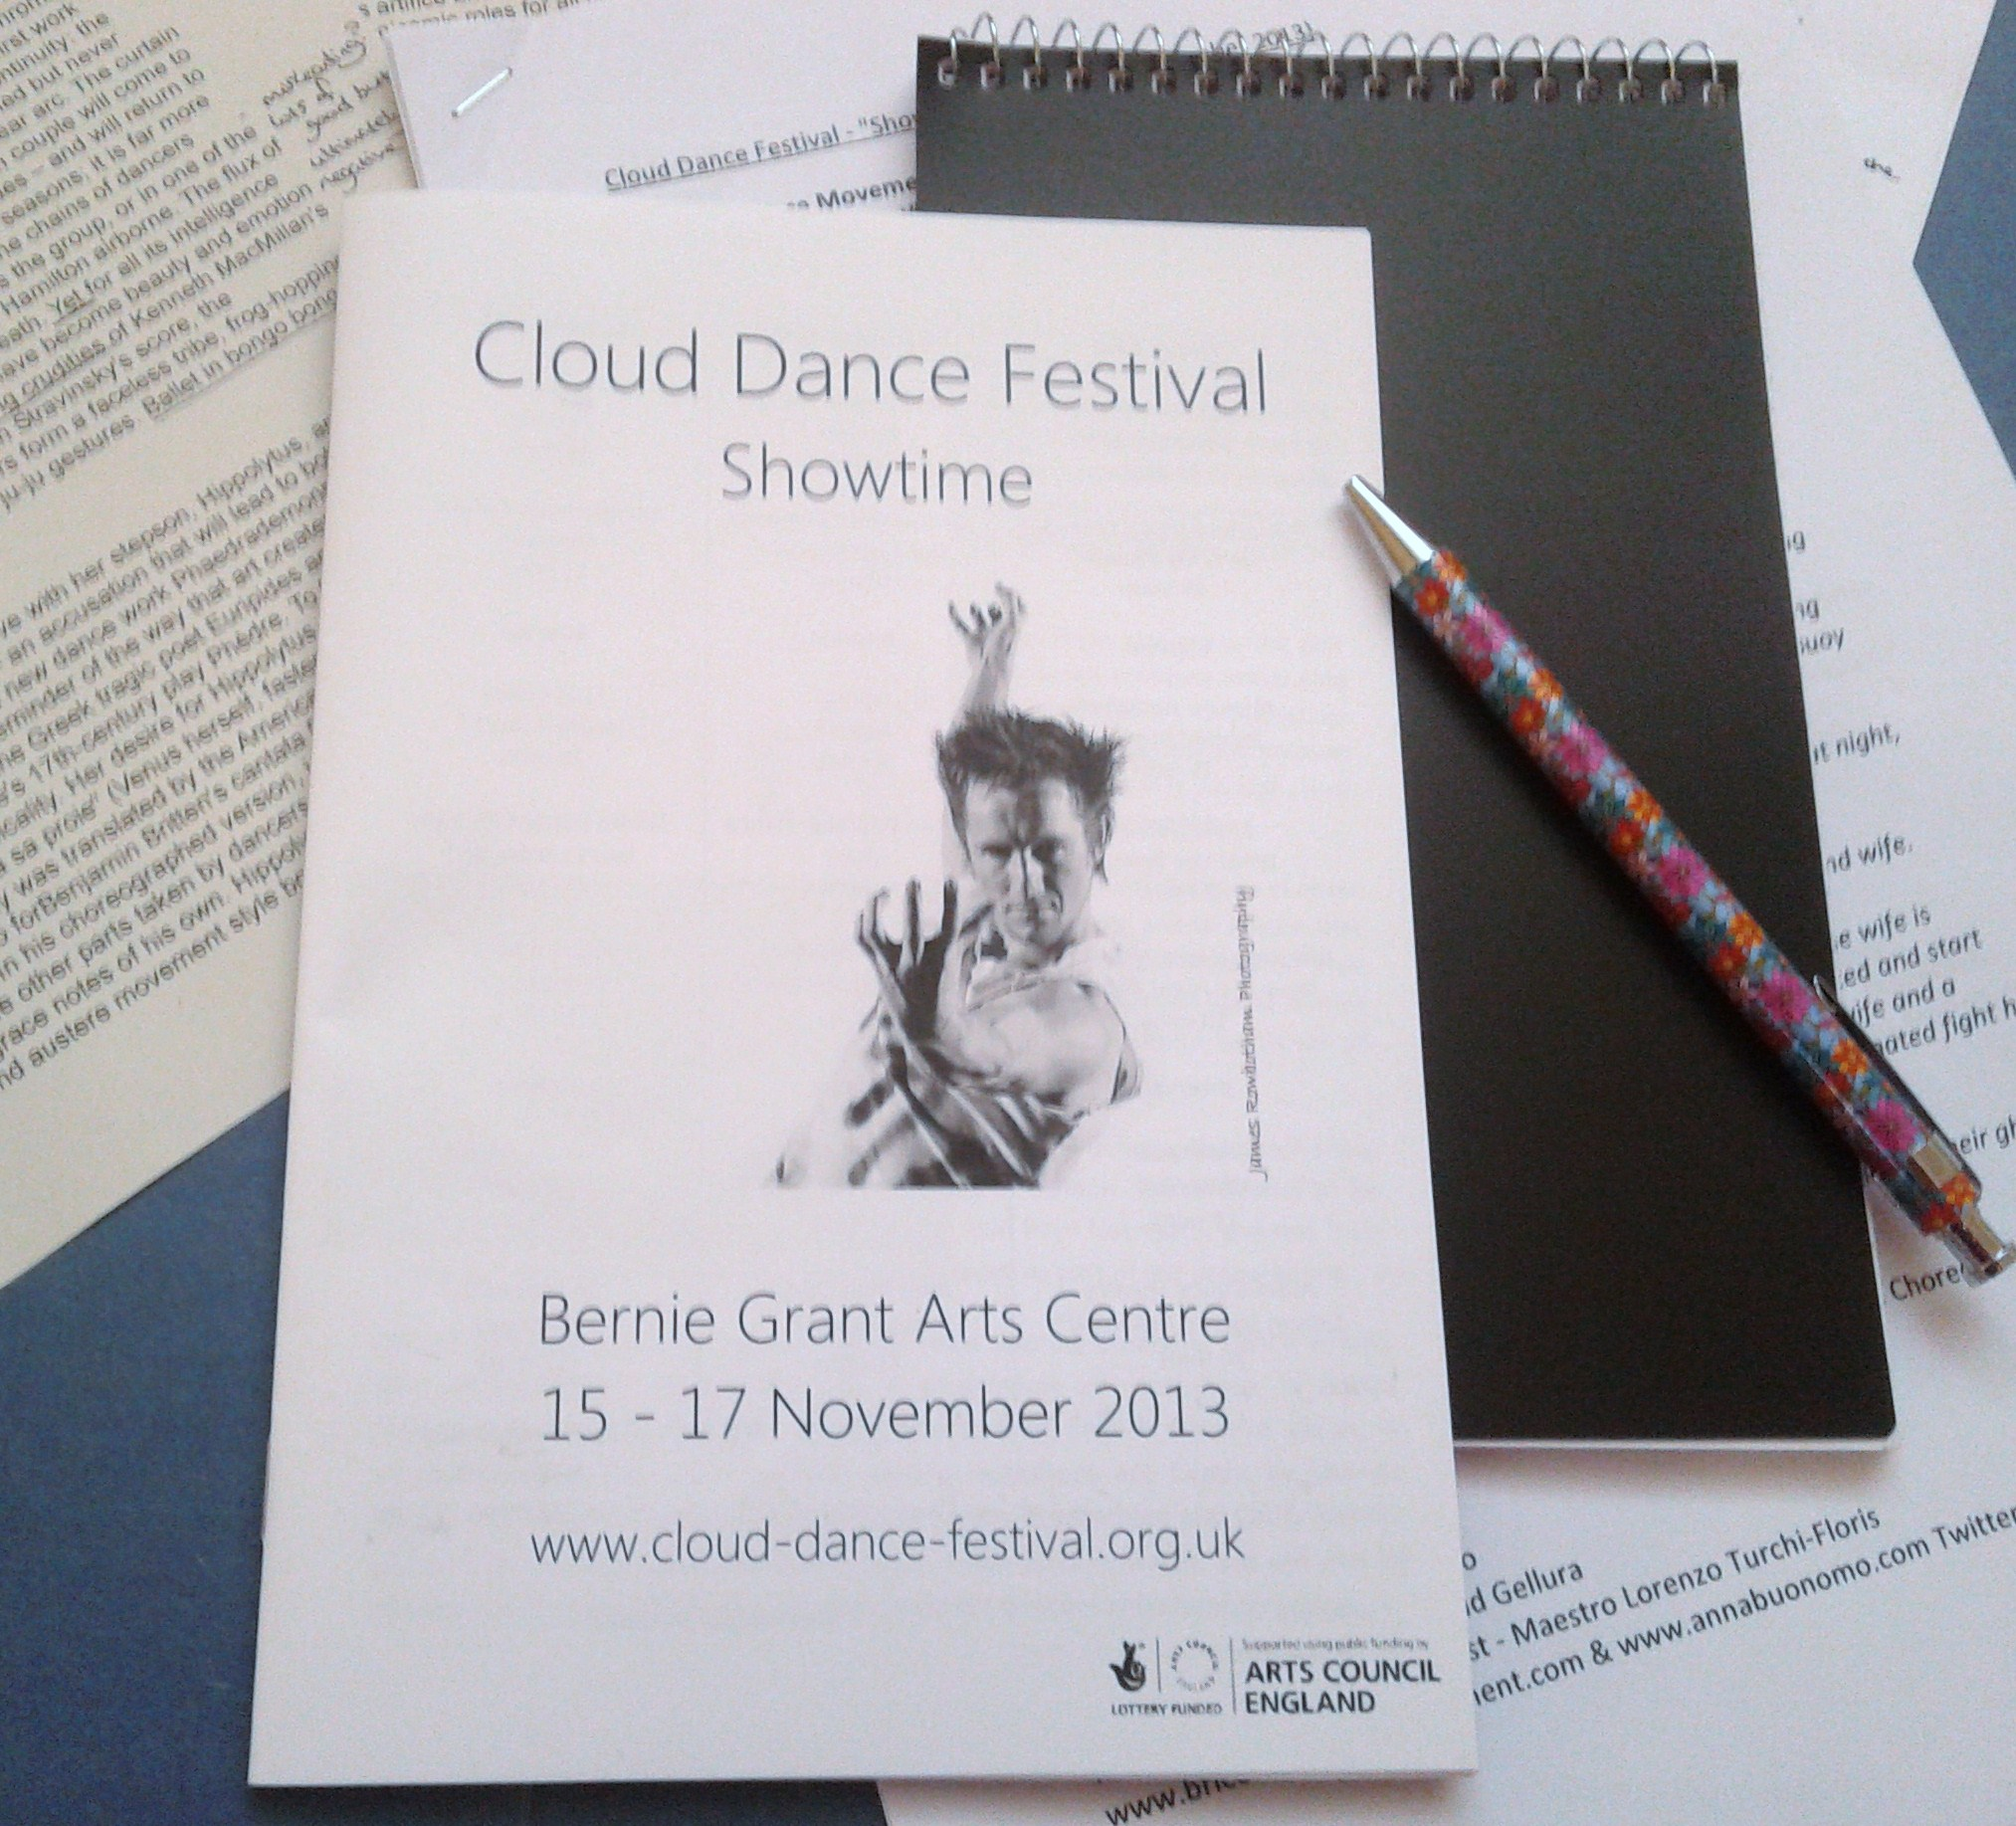 Cloud Dance Festival: Showtime